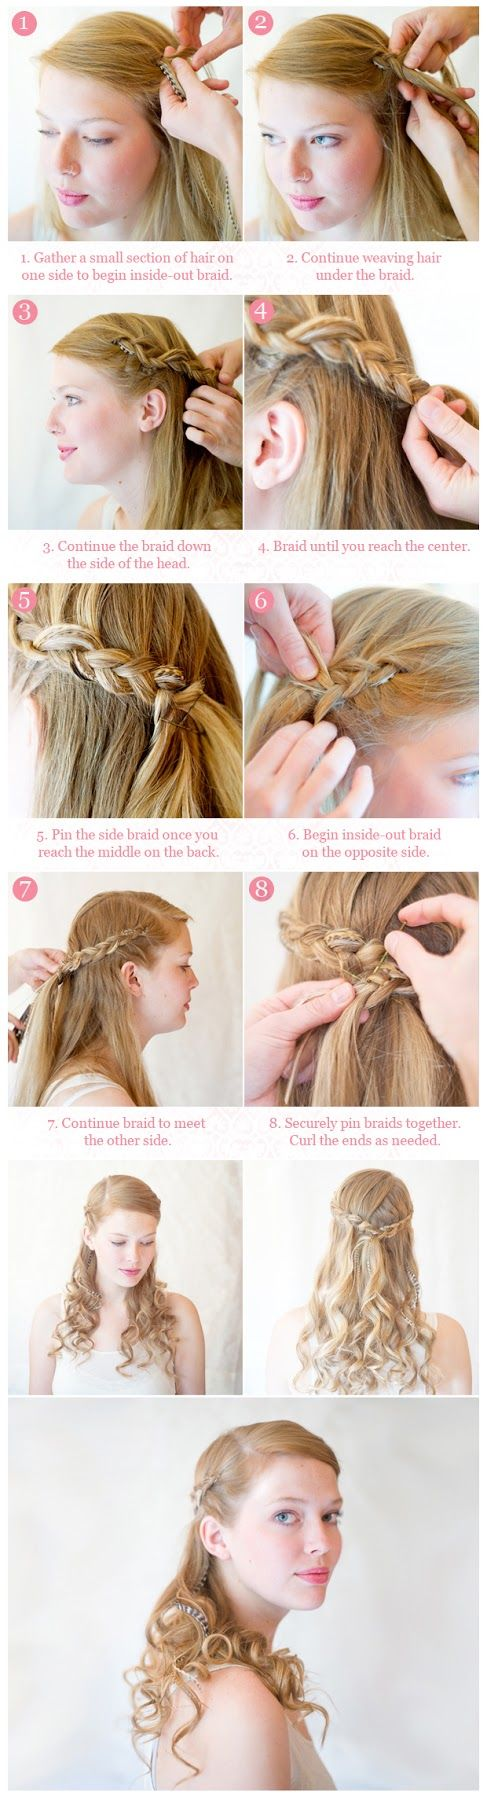 15 very amiable and very simple diy hairstyle tutorials diy inside out half up braid hairstyle diy fashion tips solutioingenieria Choice Image